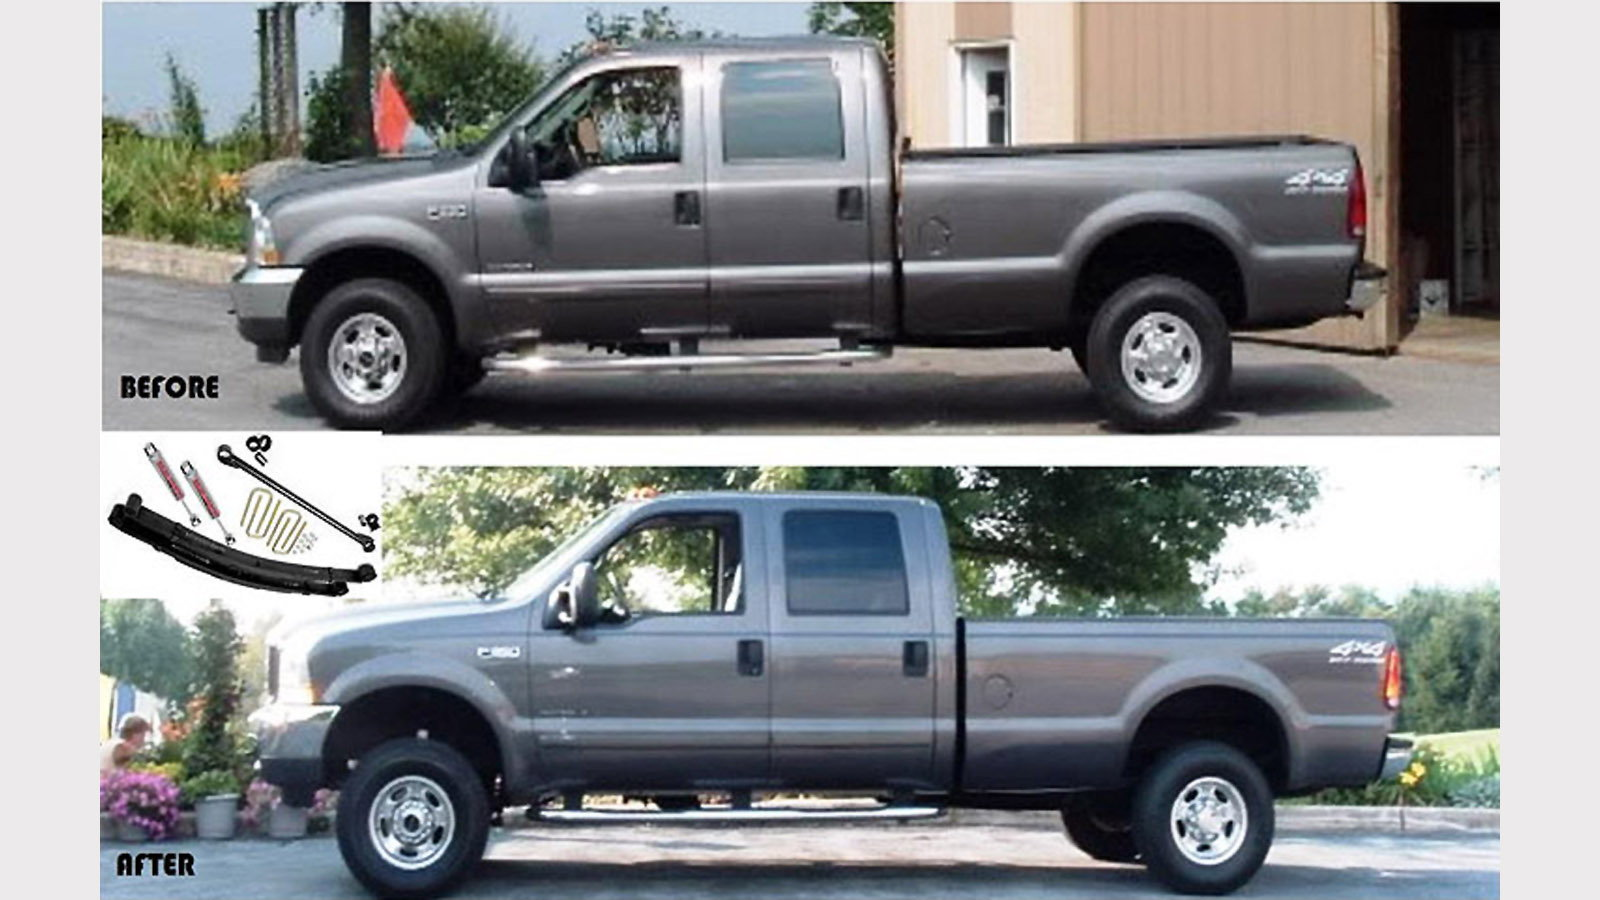 Ford Trucks, Upgrades, Modifications